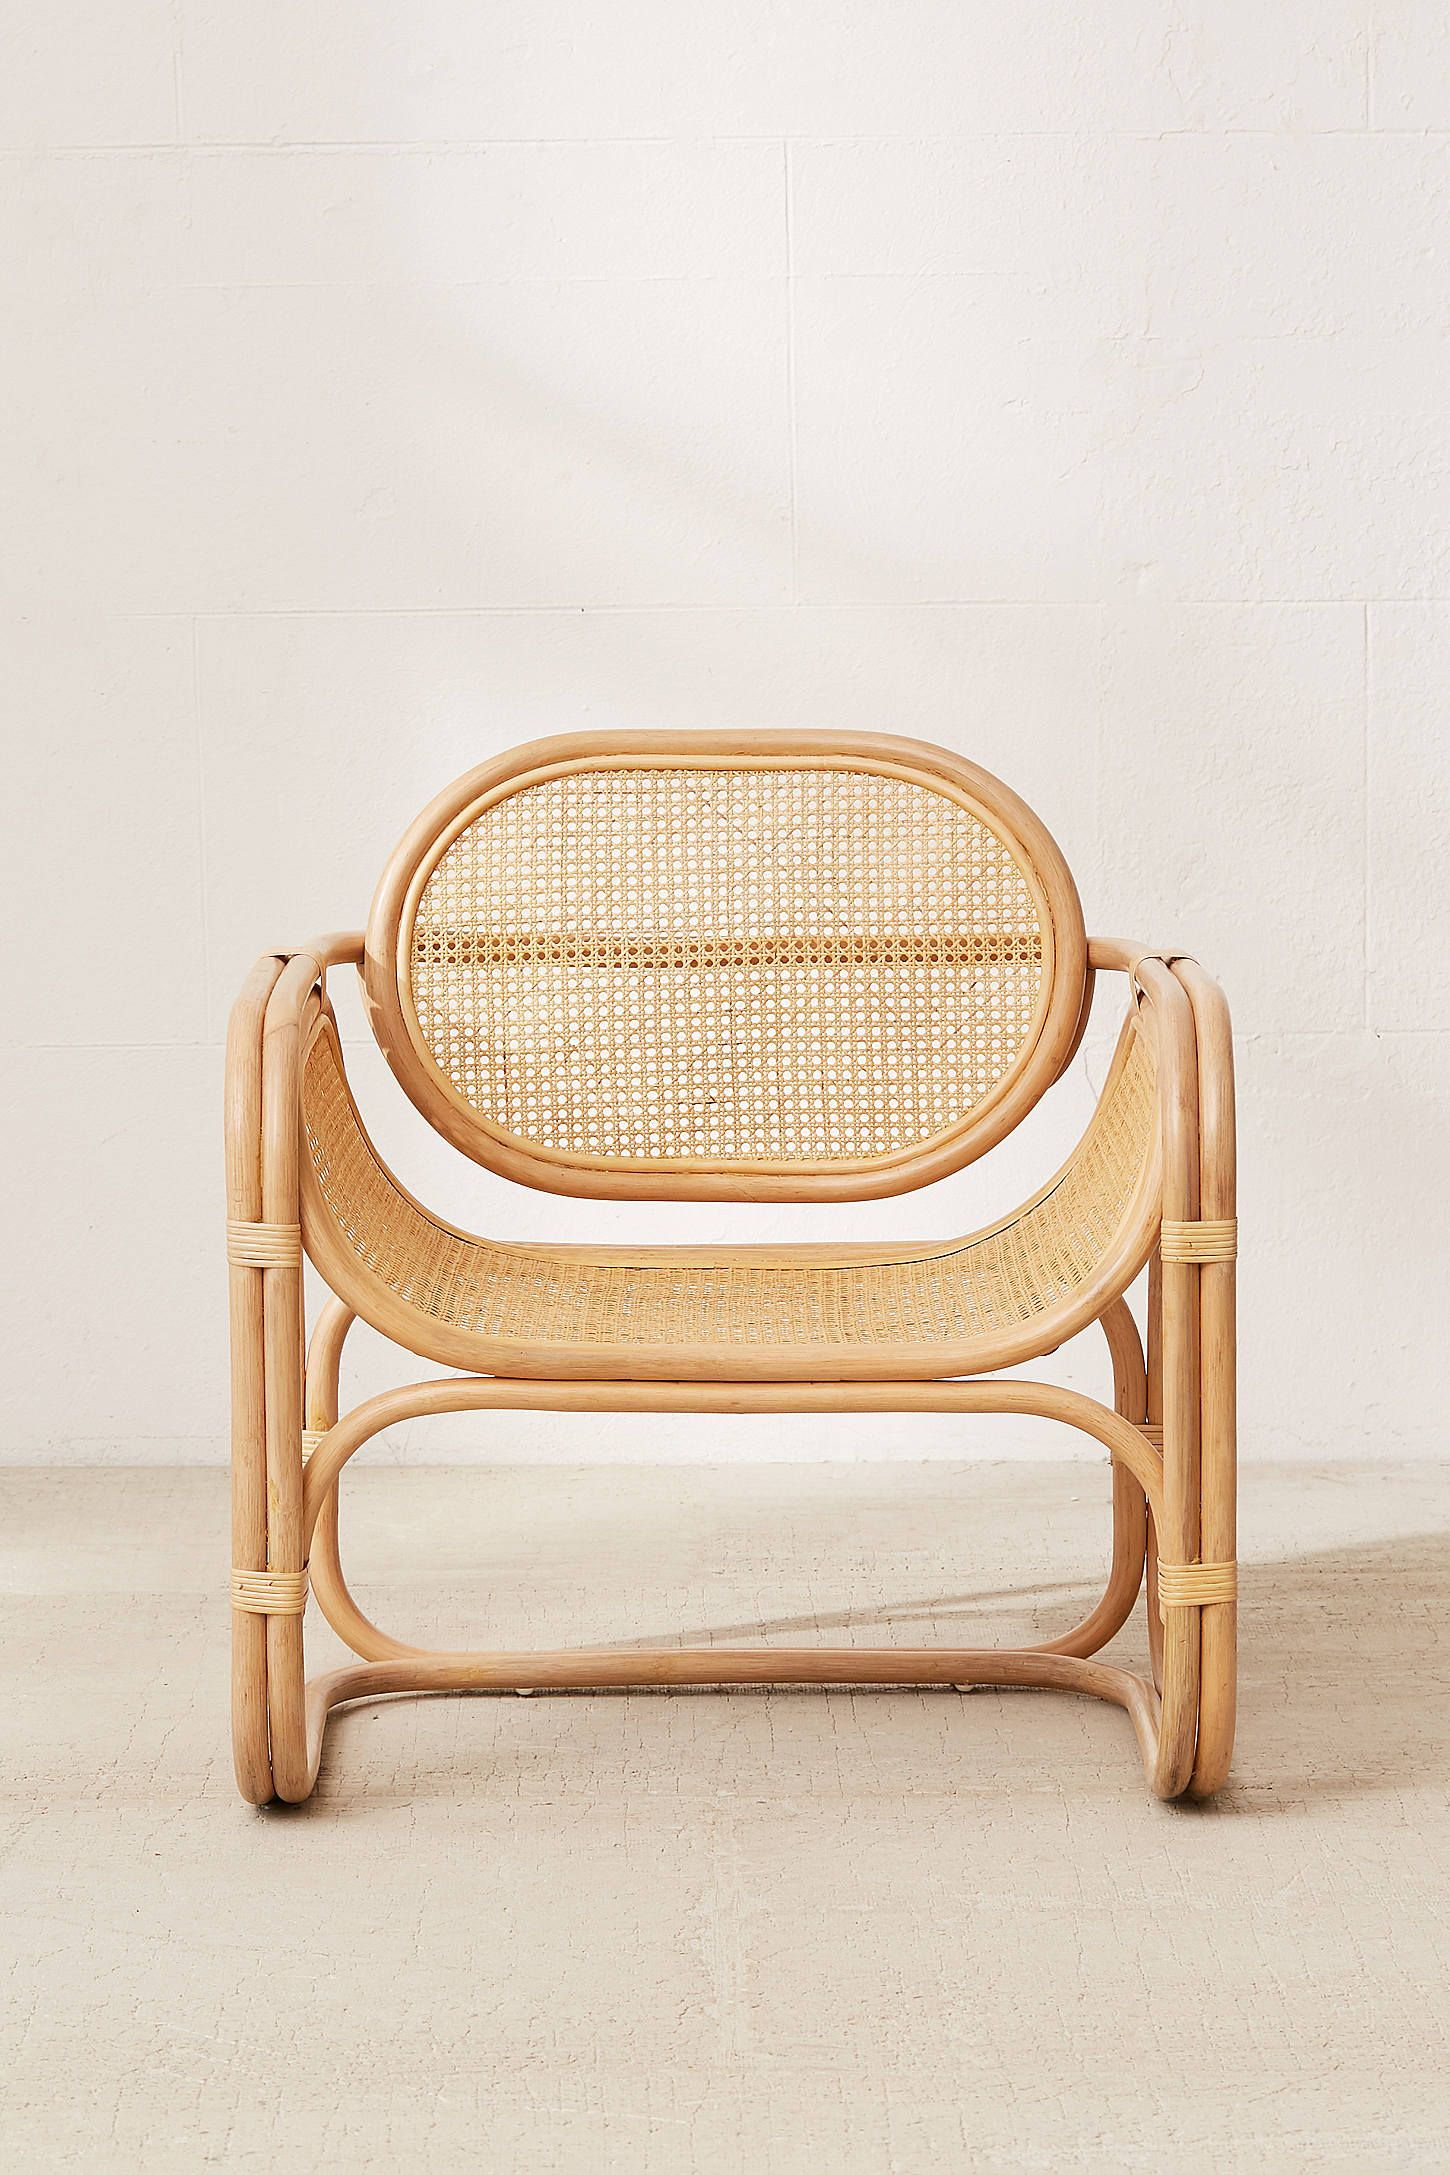 Urban Outfitters Chair Covers Spandex Shop Marte Lounge At Today We